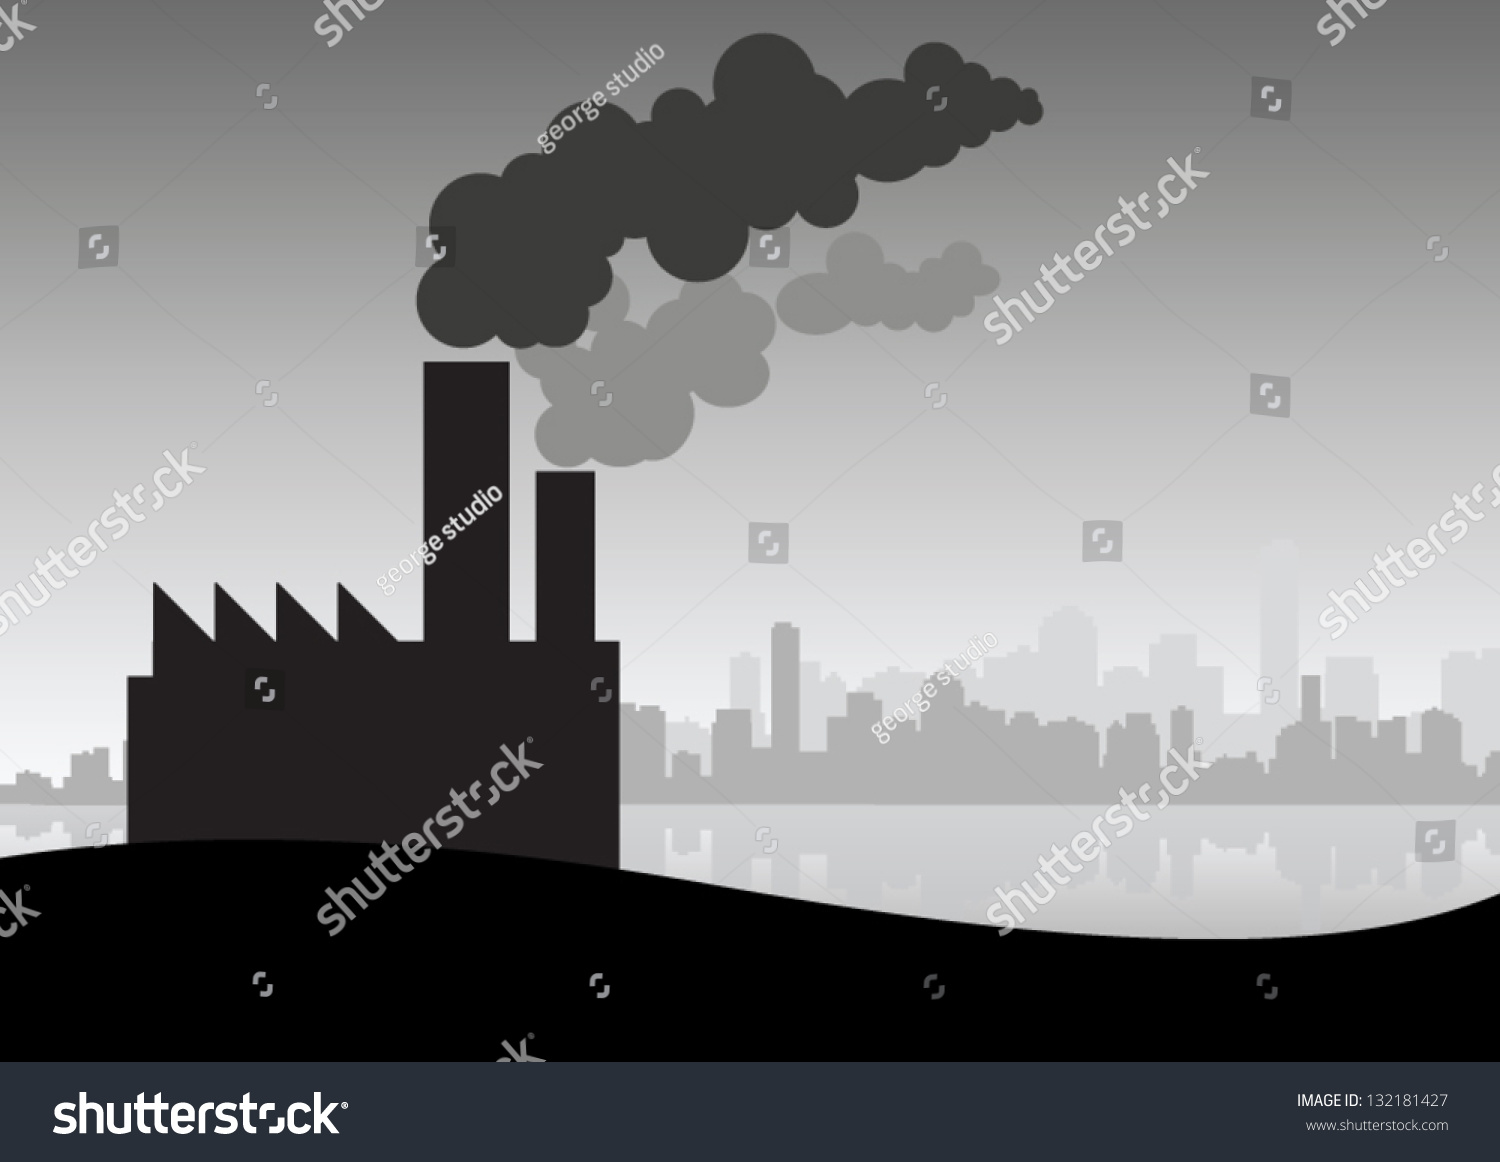 industrial pollution clipart - photo #28